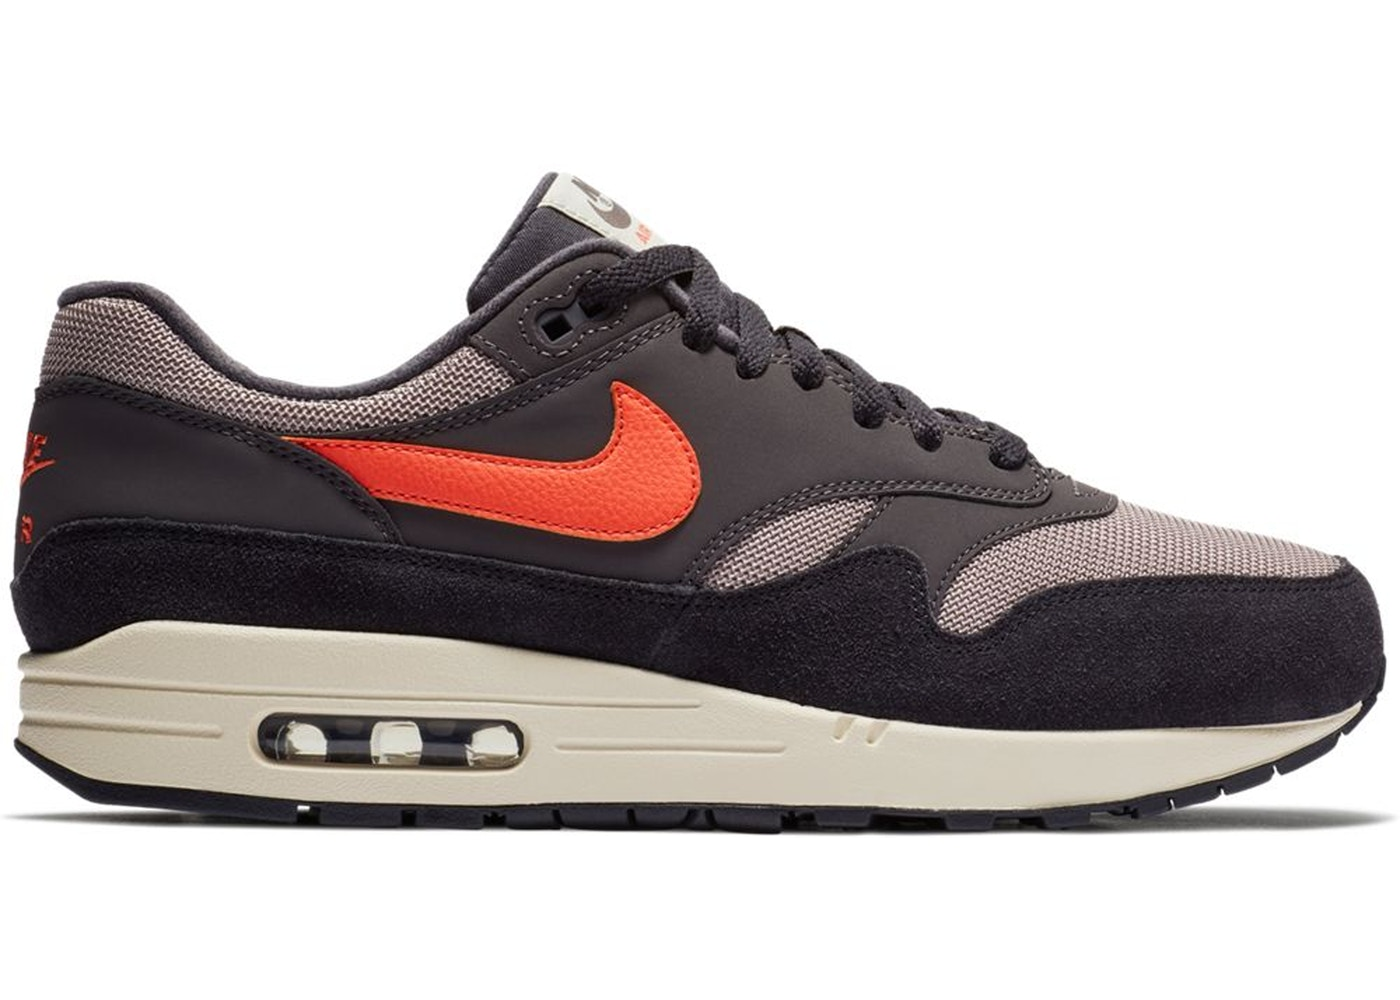 4a2f6a55a8 Air Max 1 Oil Grey Wild Mango - AH8145-004